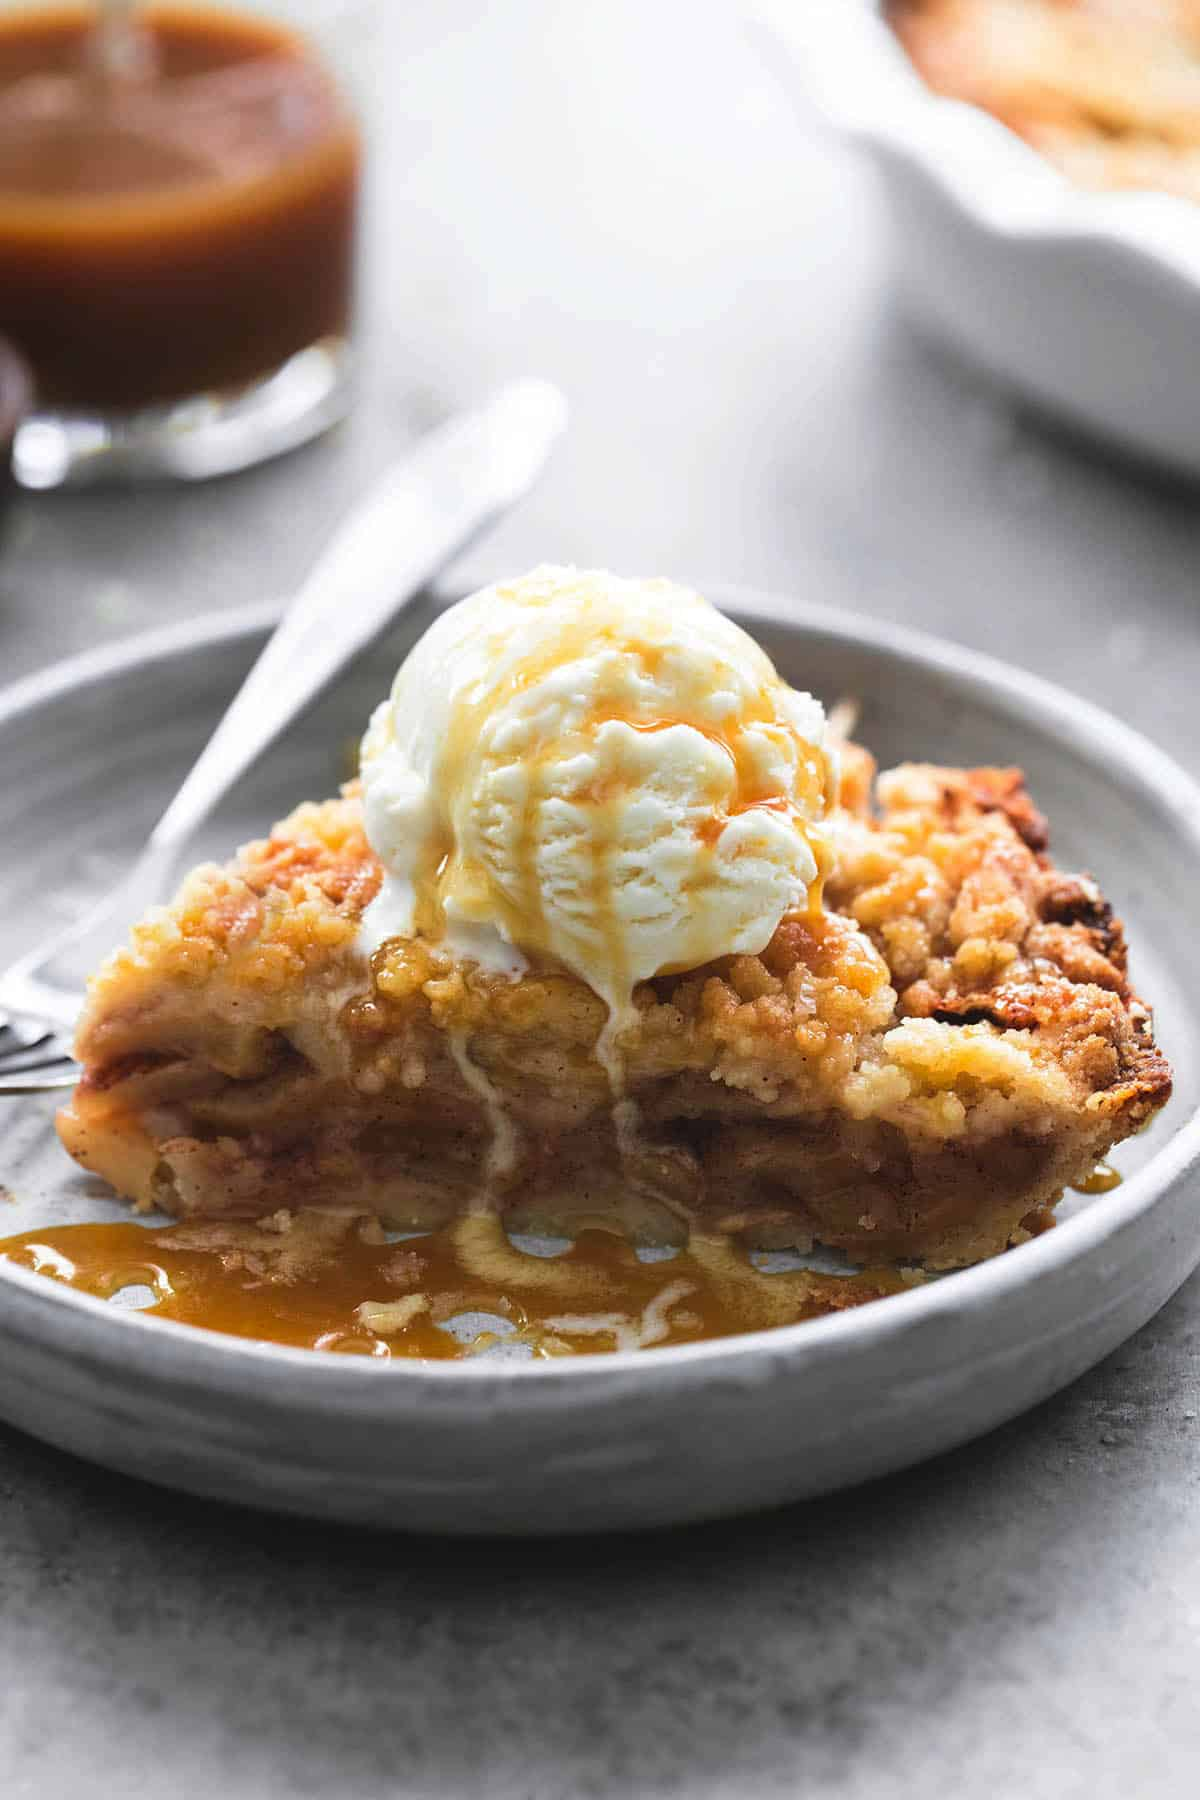 How Do You Make Apple Crumble Pie Topping